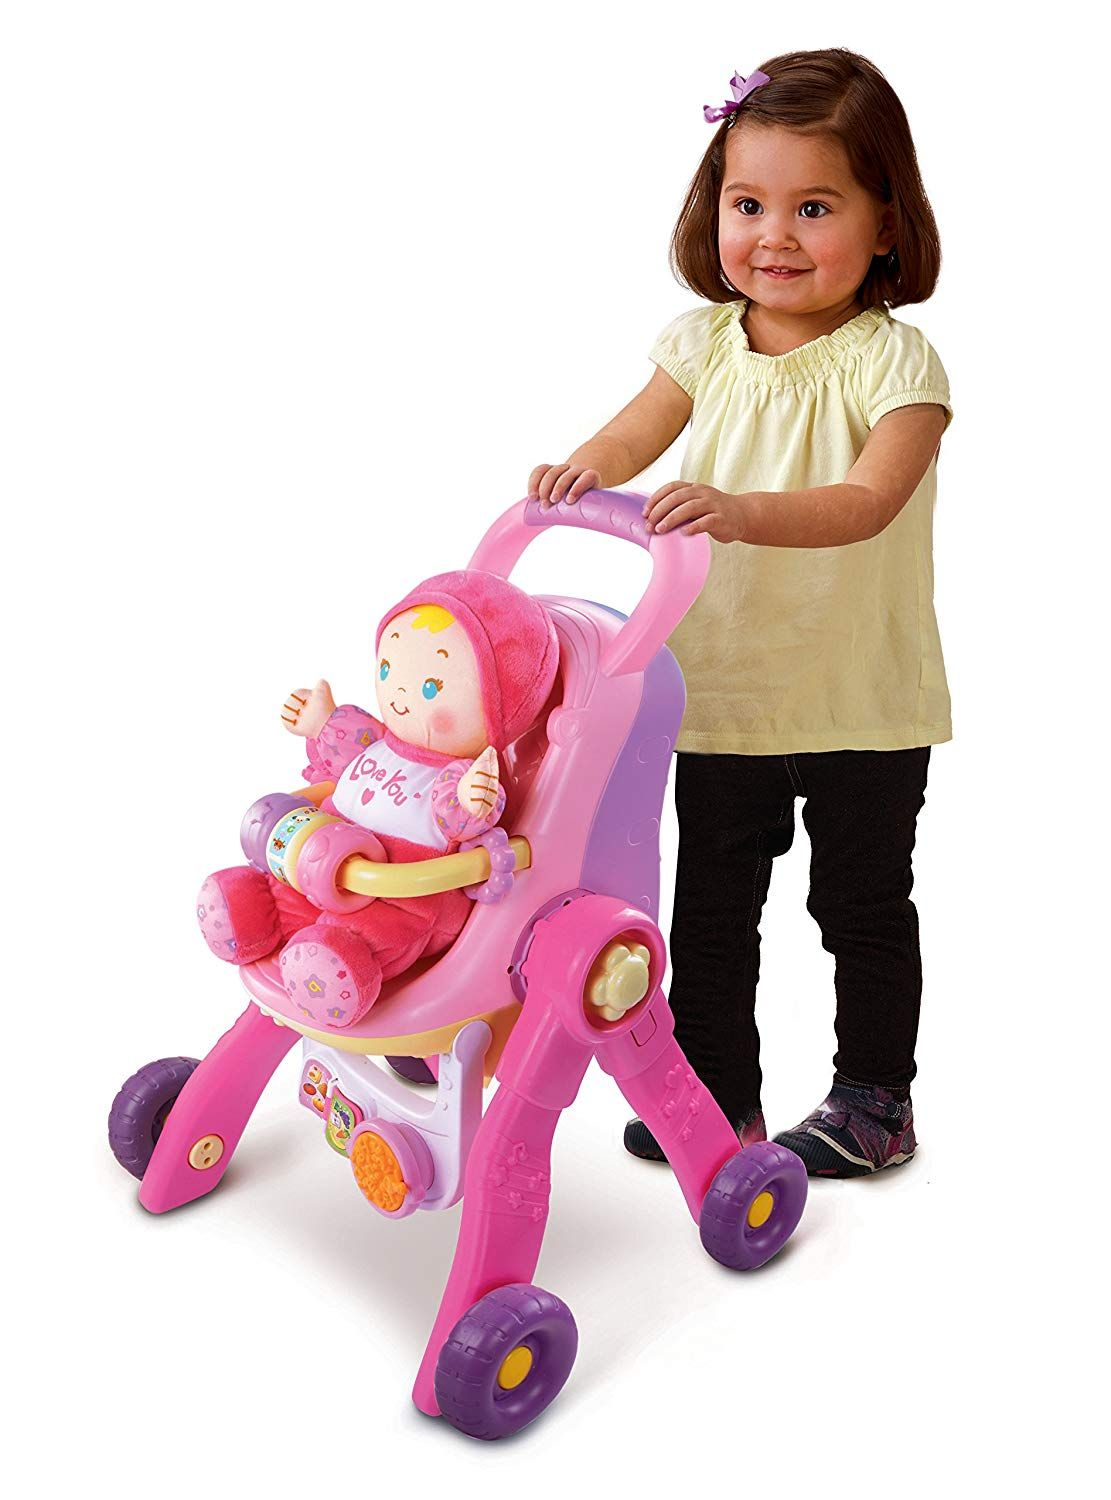 Best Gifts and Toys for 1 Year Old Girls | Baby doll ...